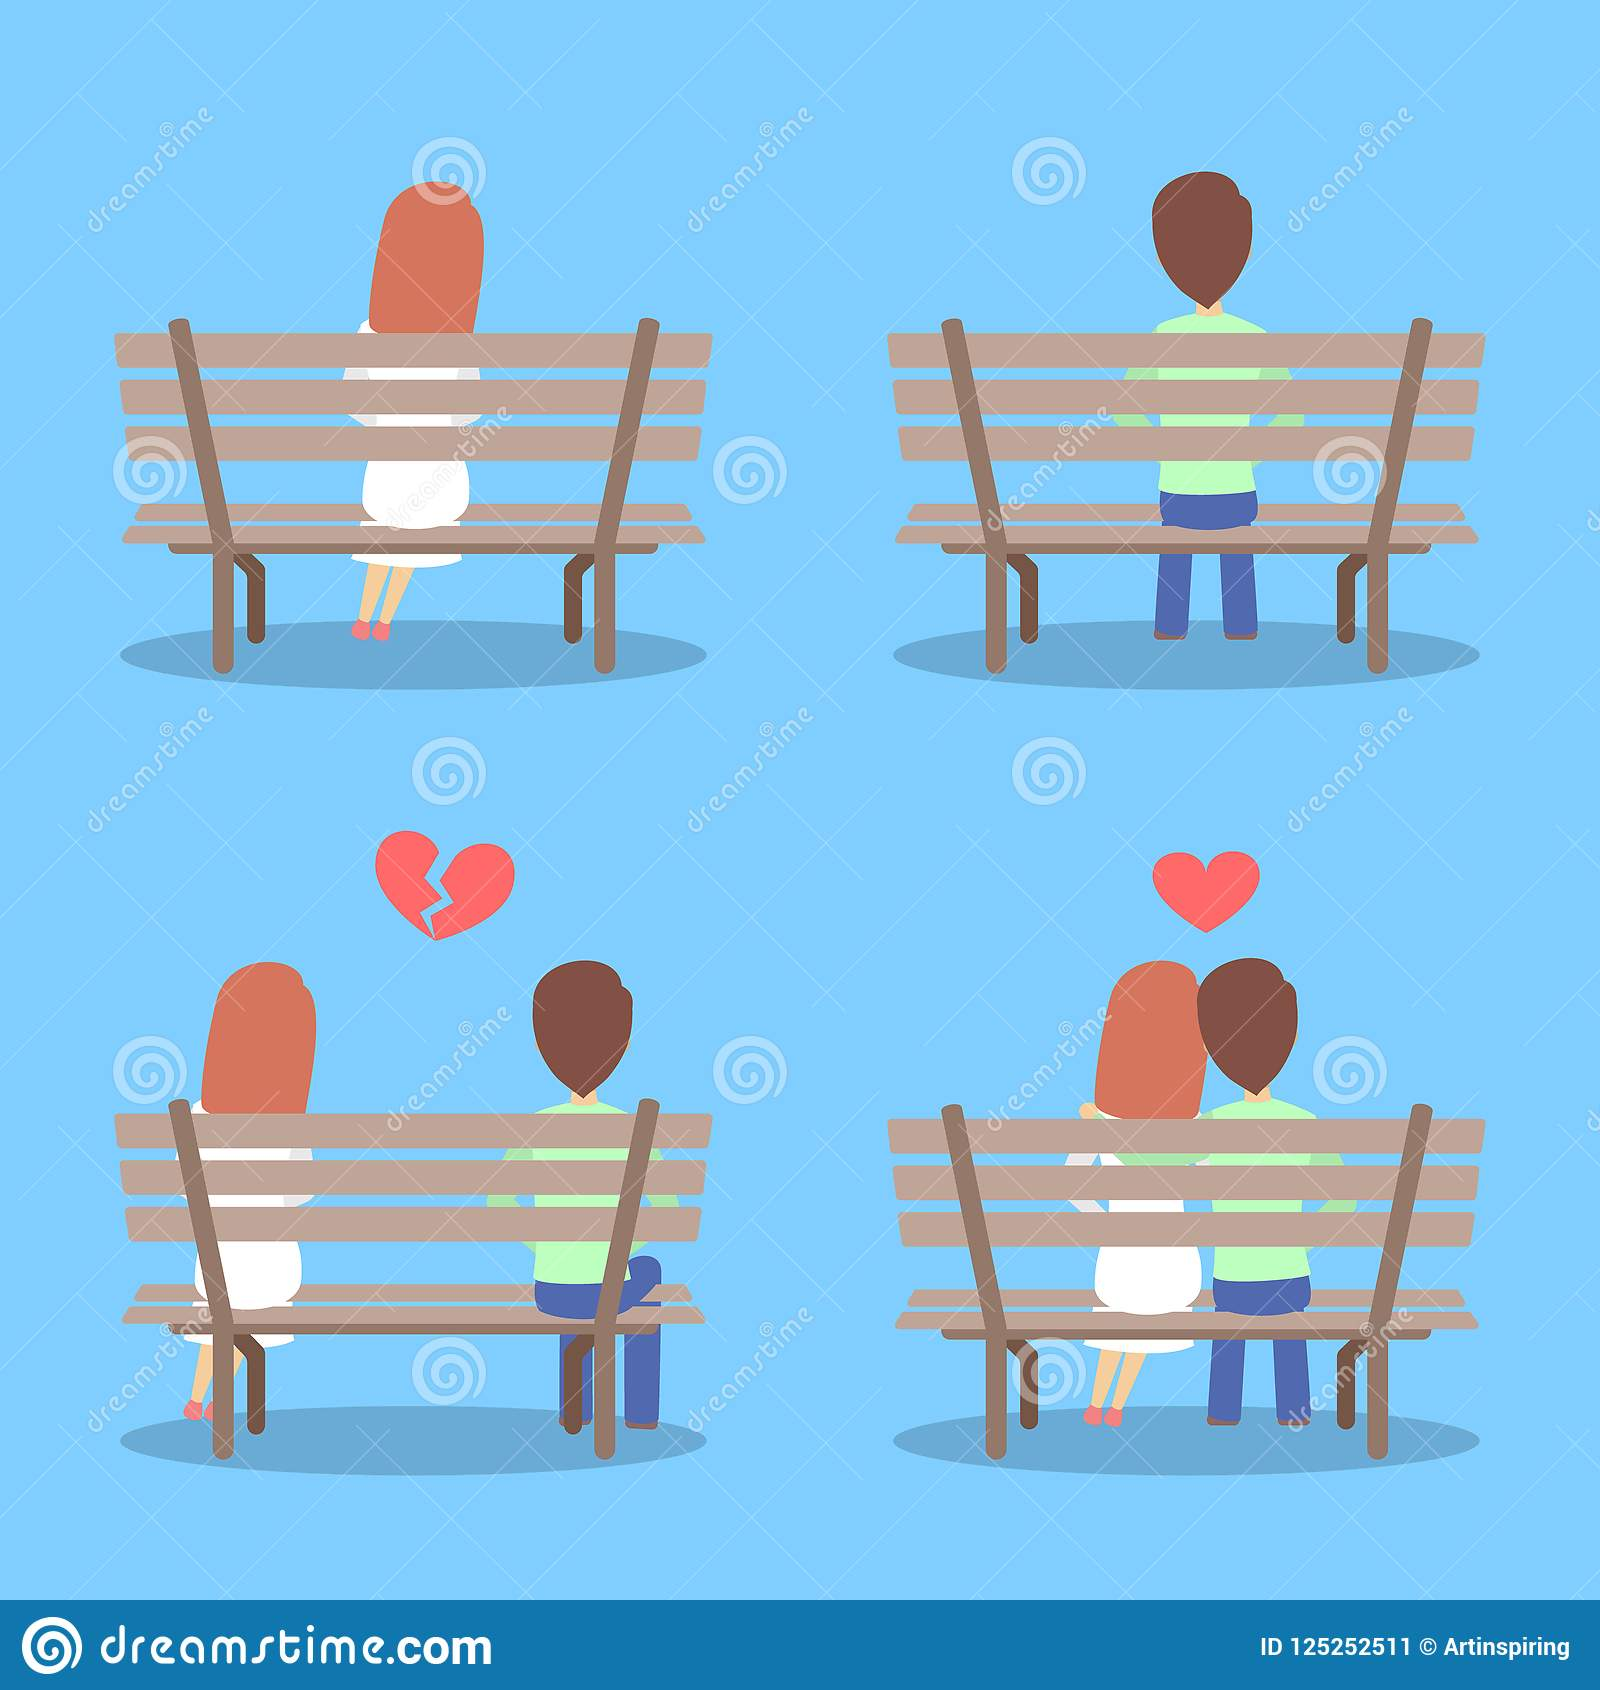 Man And Woman Sitting On The Bench, Falling In Love And Breaking Up